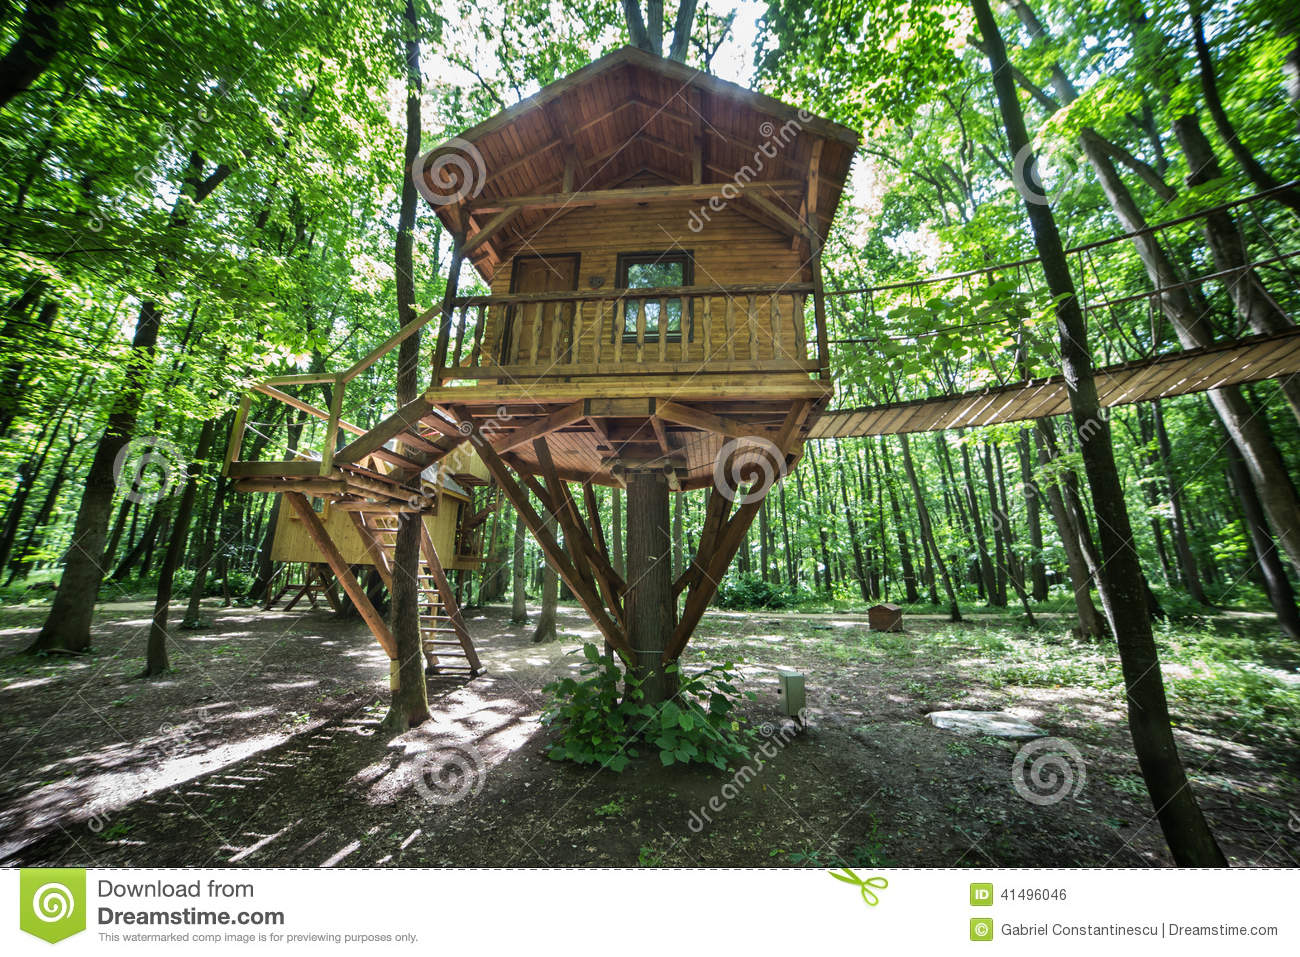 Wooden tree-house in nature park